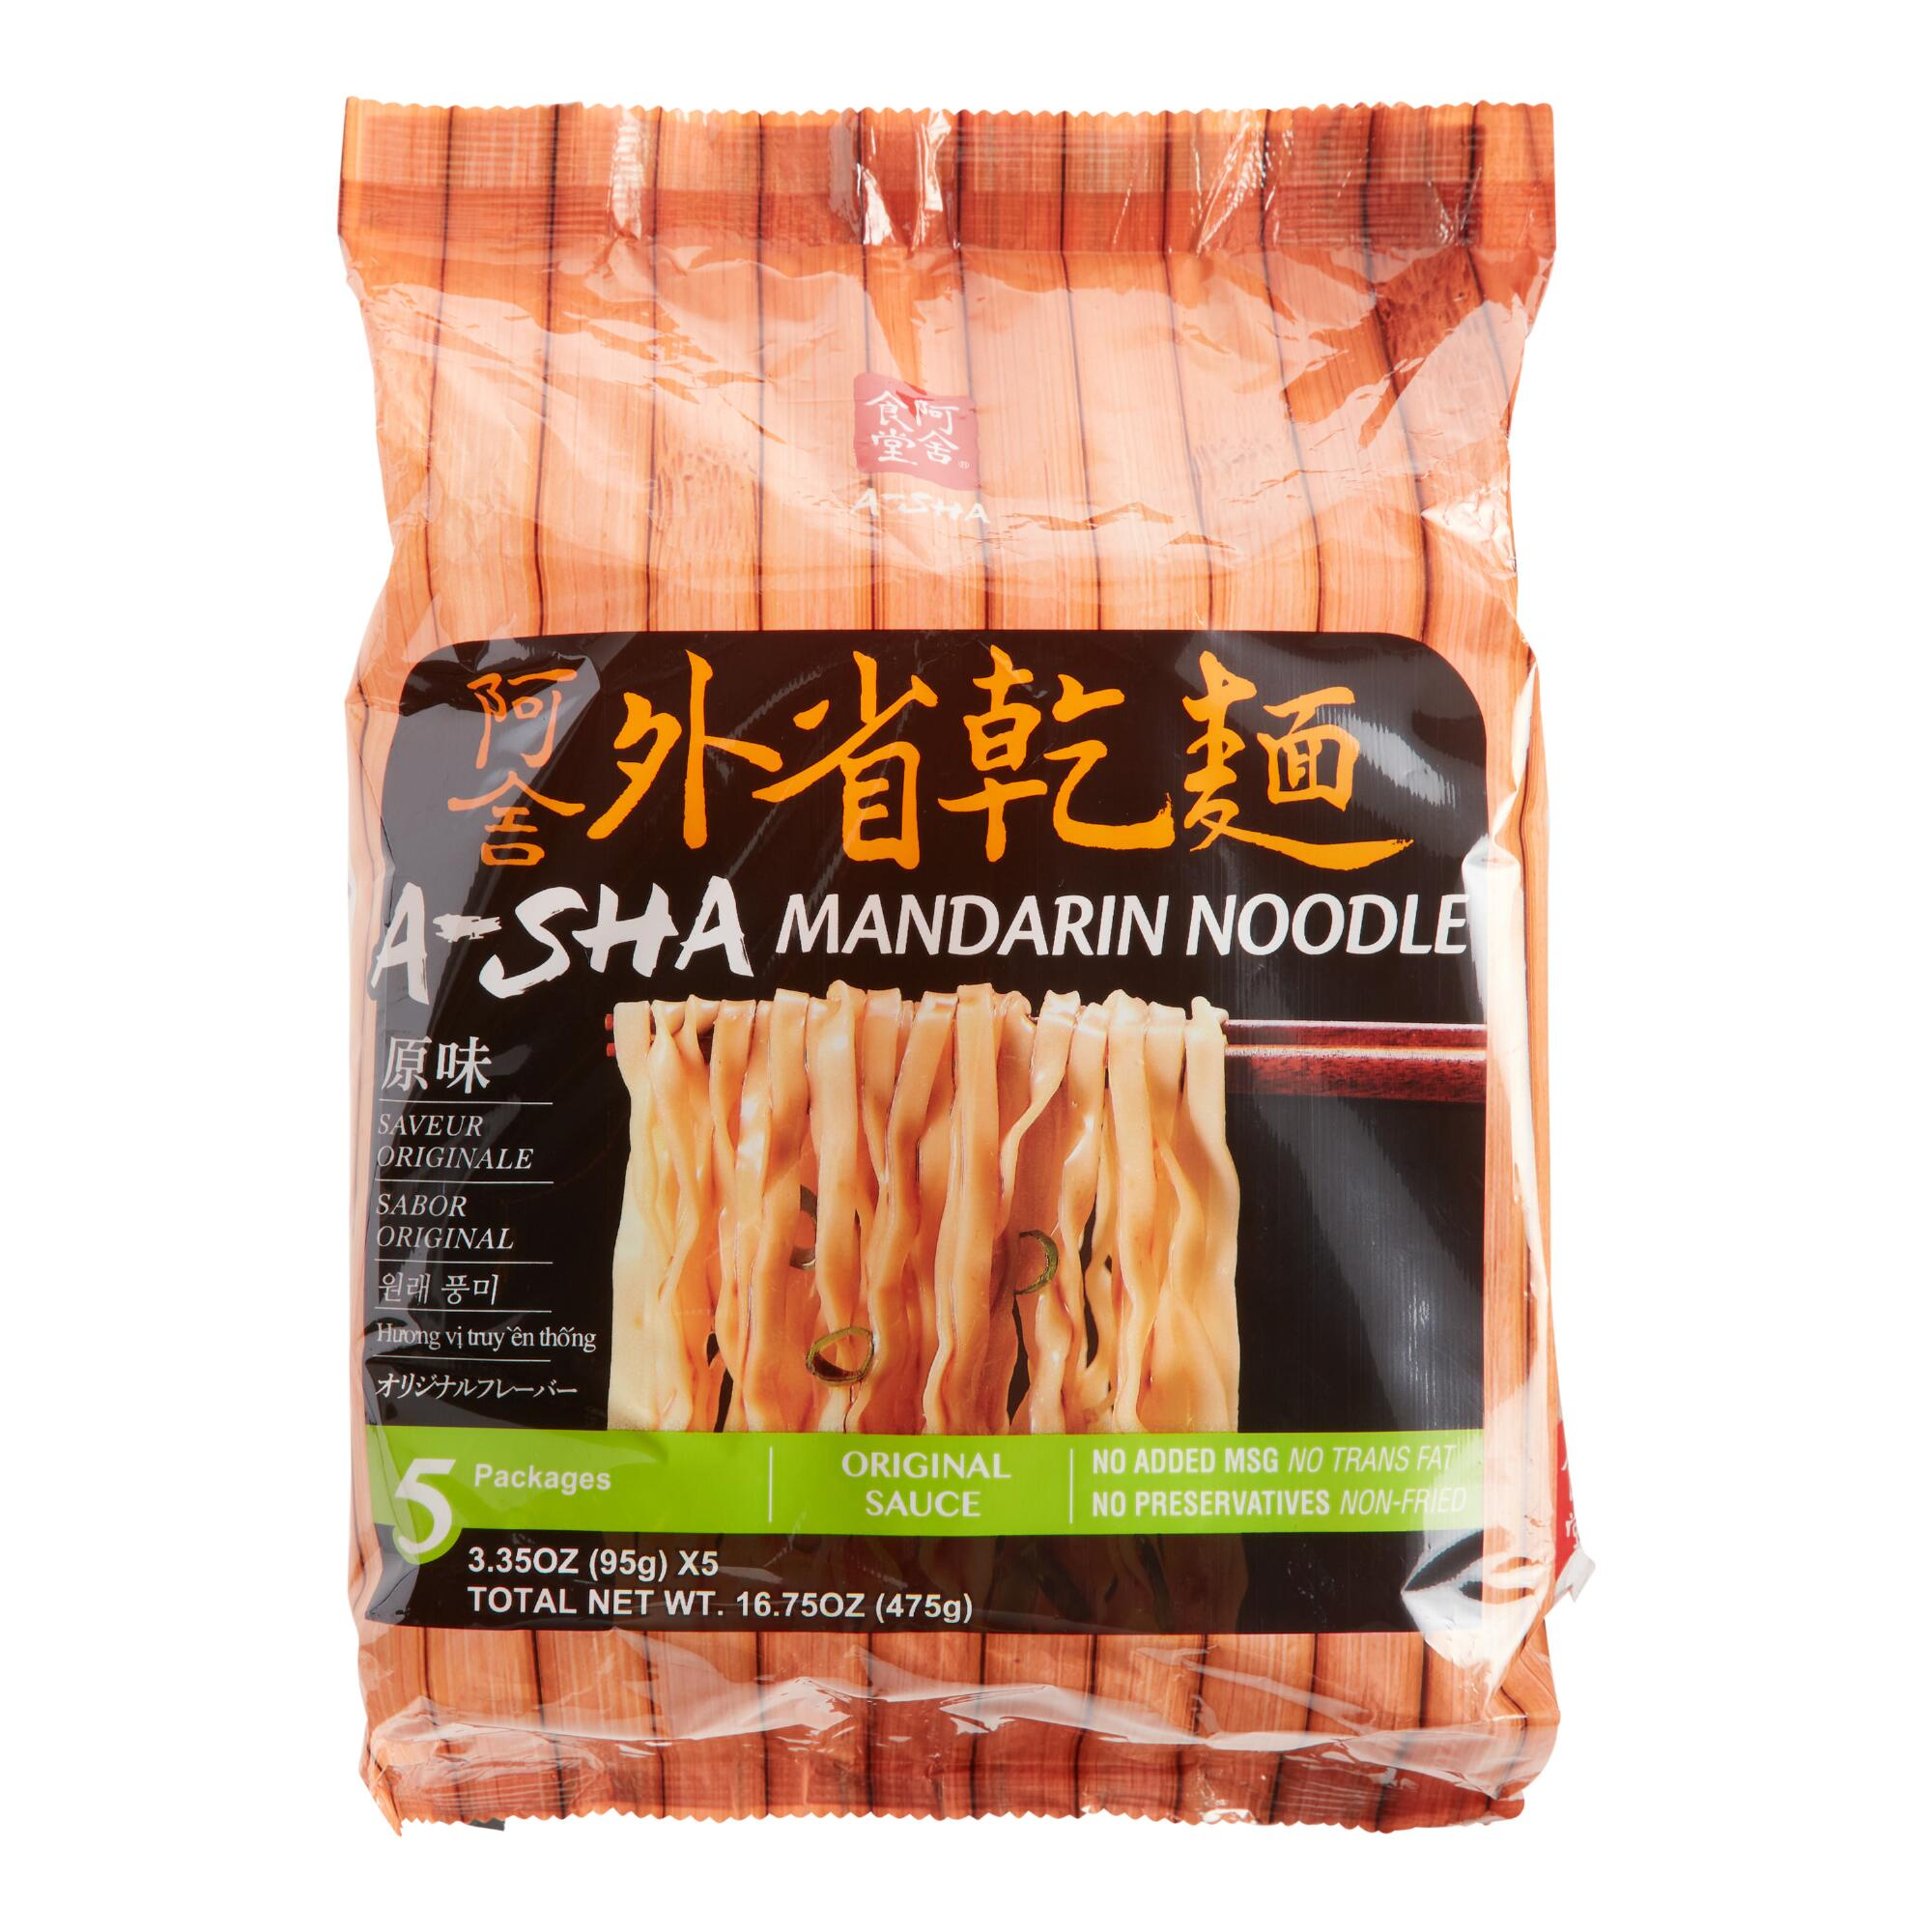 A-Sha Original Mandarin Noodles by World Market